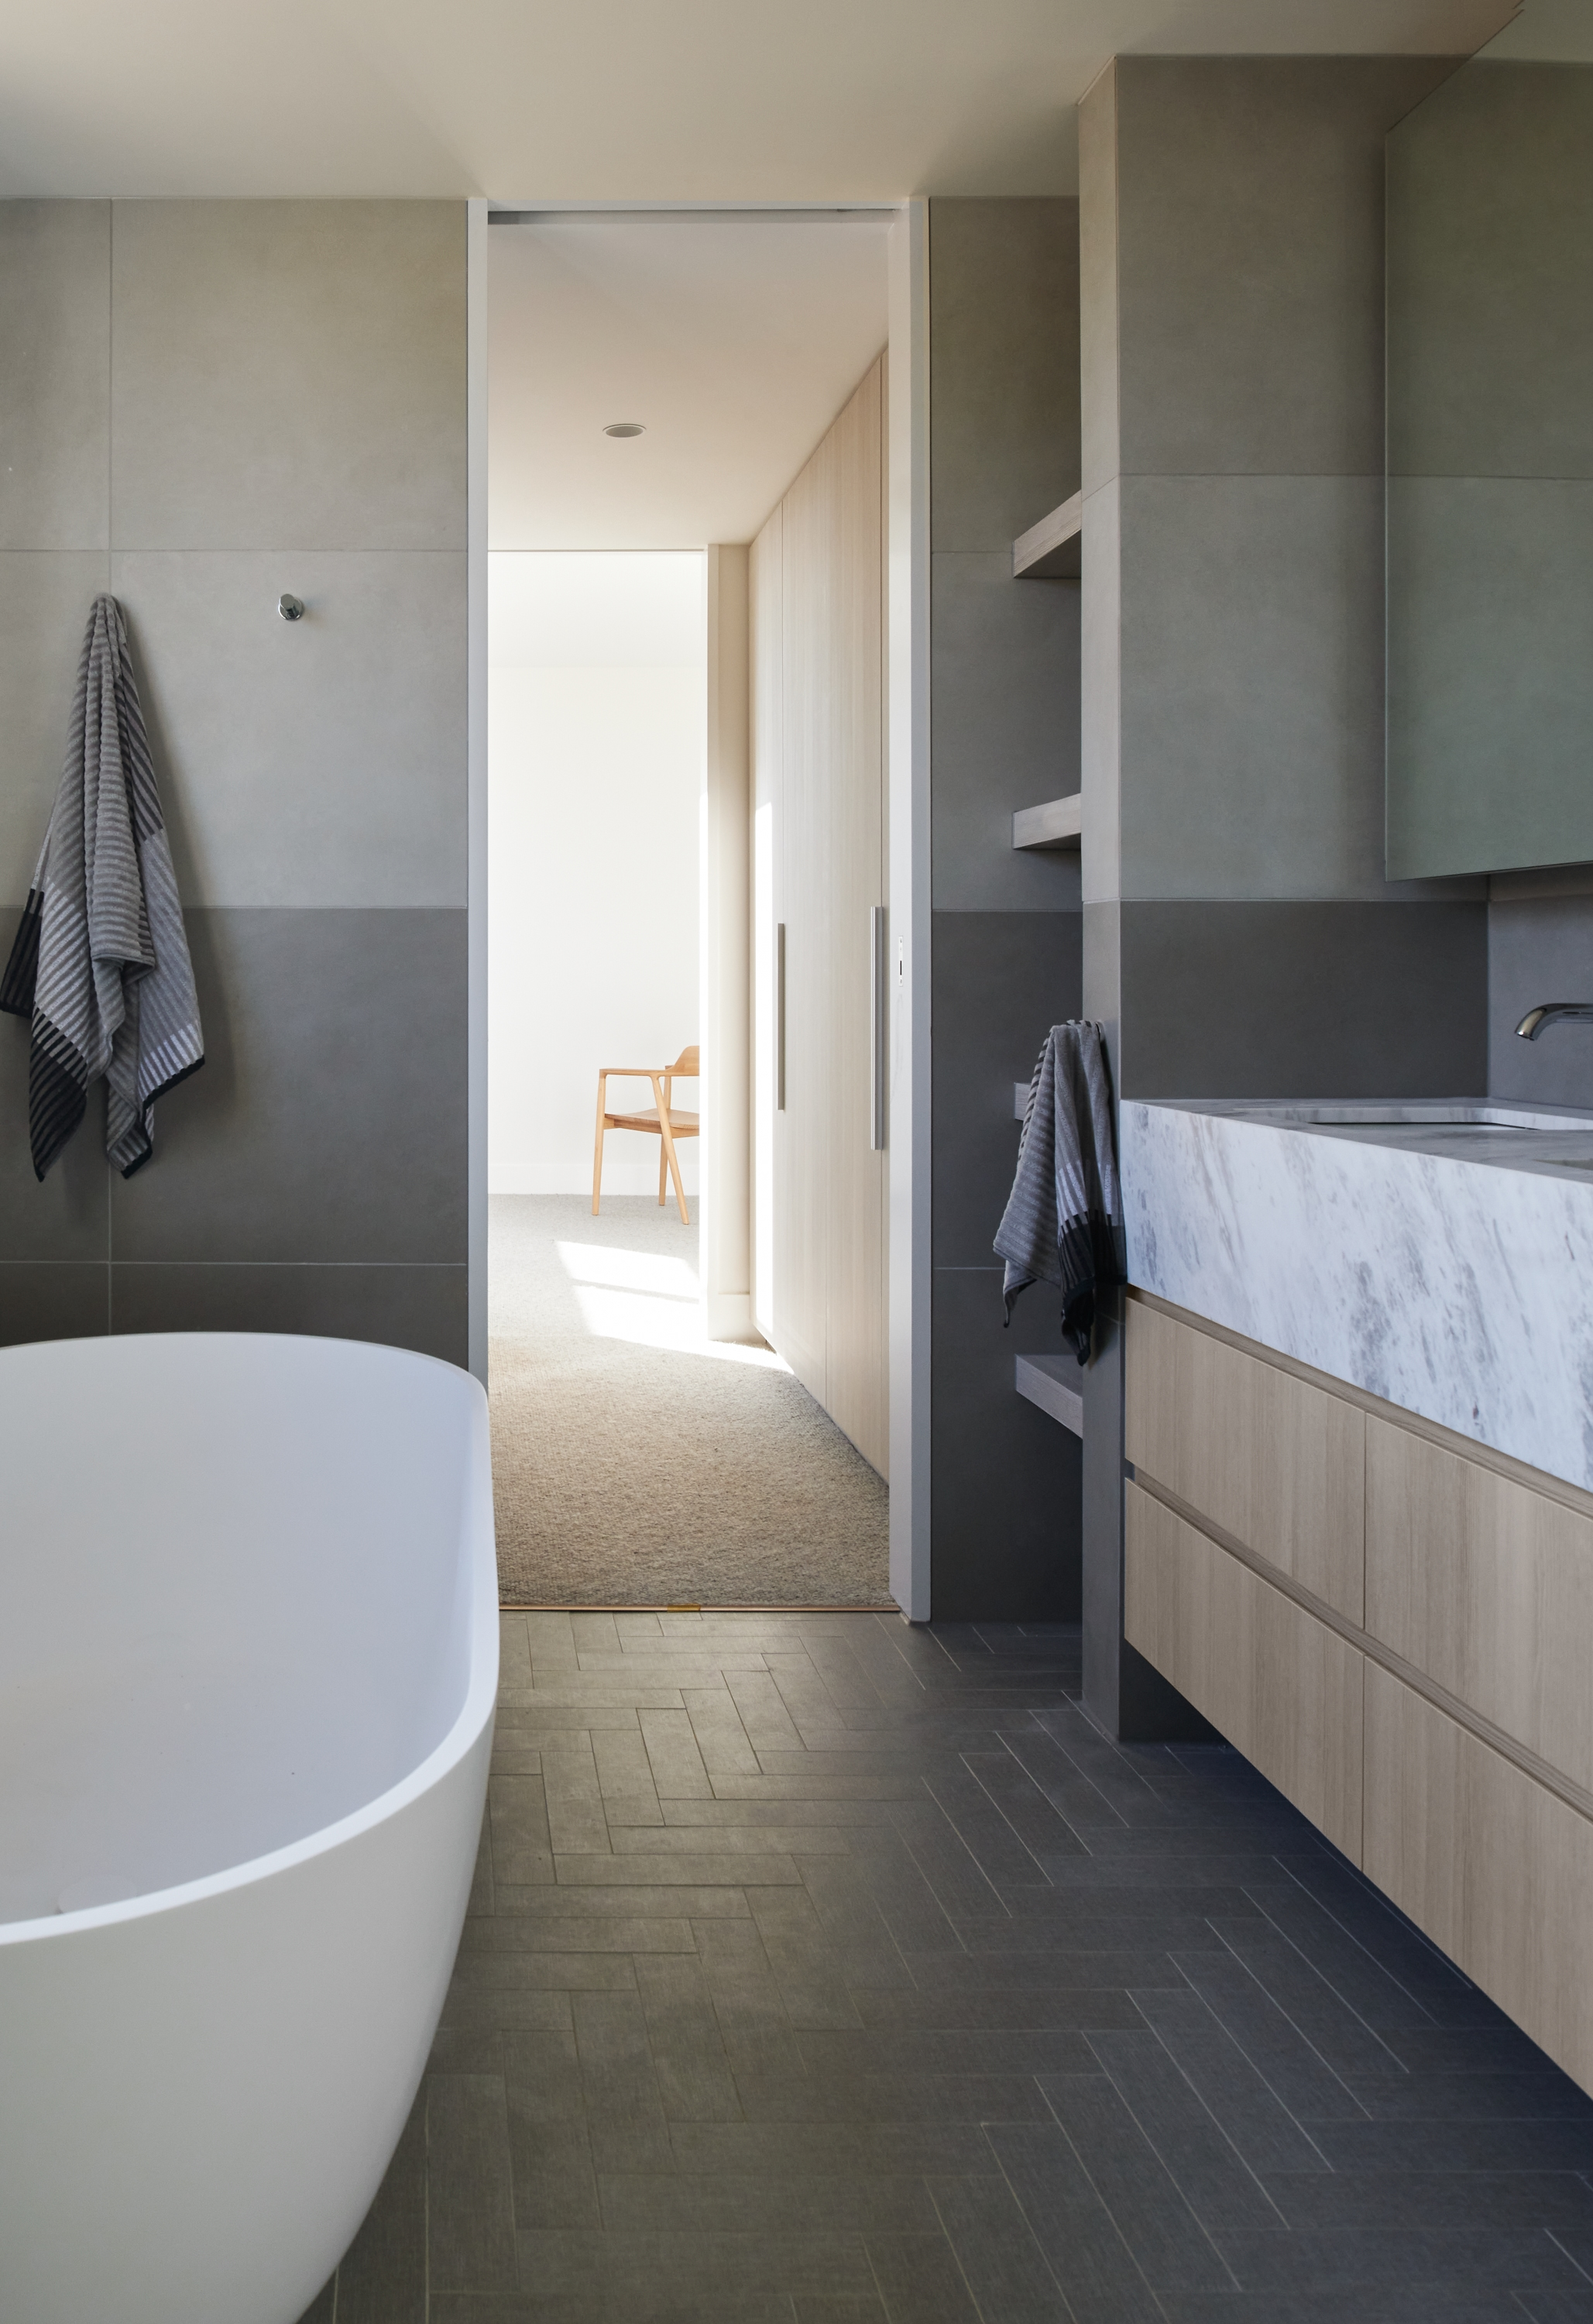 Wattletree Road Apartments whose architecture and interiors by  Bayley Ward Architects